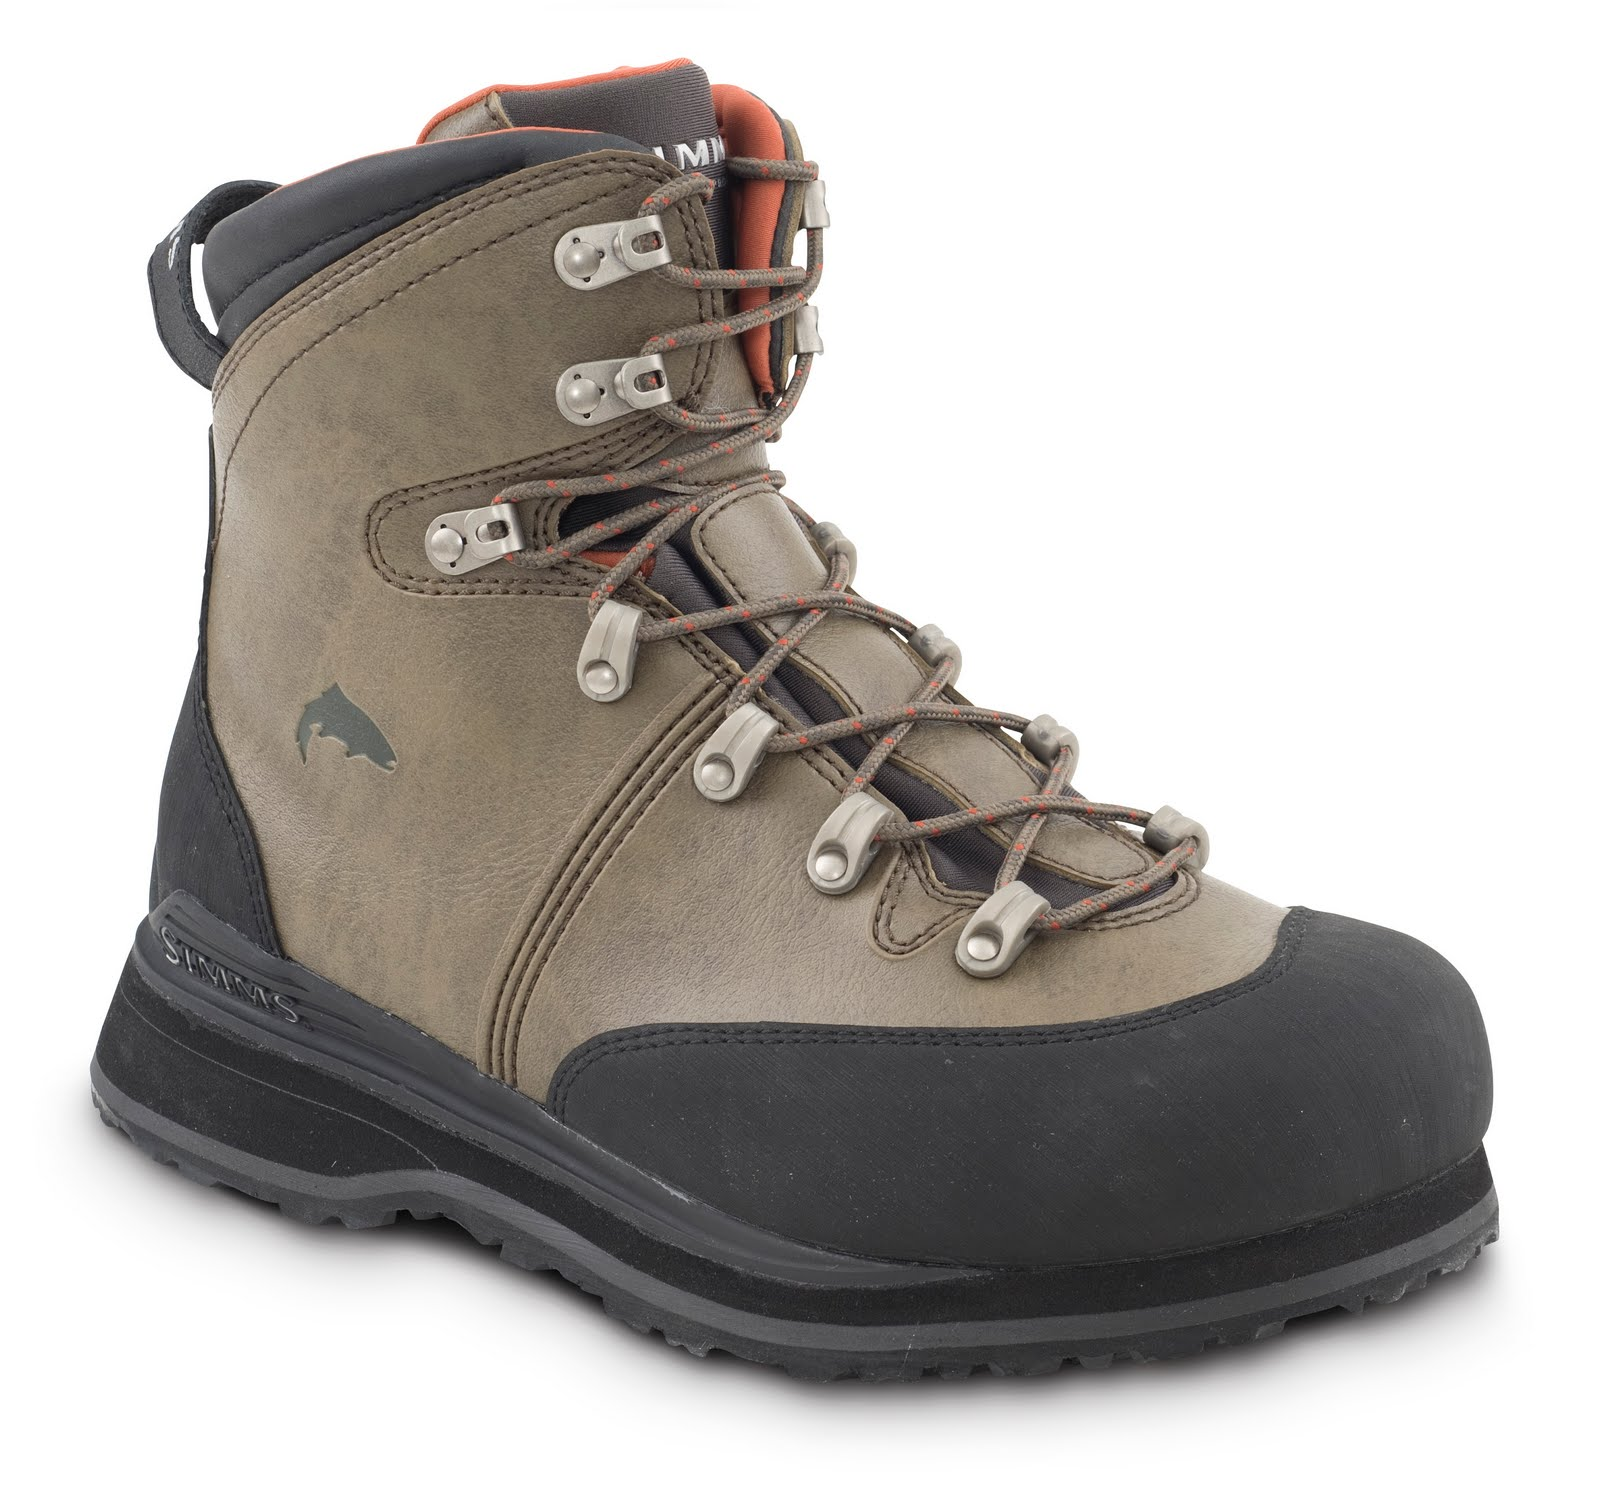 Simms freestone wading boots glasgow angling centre for Simms fishing shoes